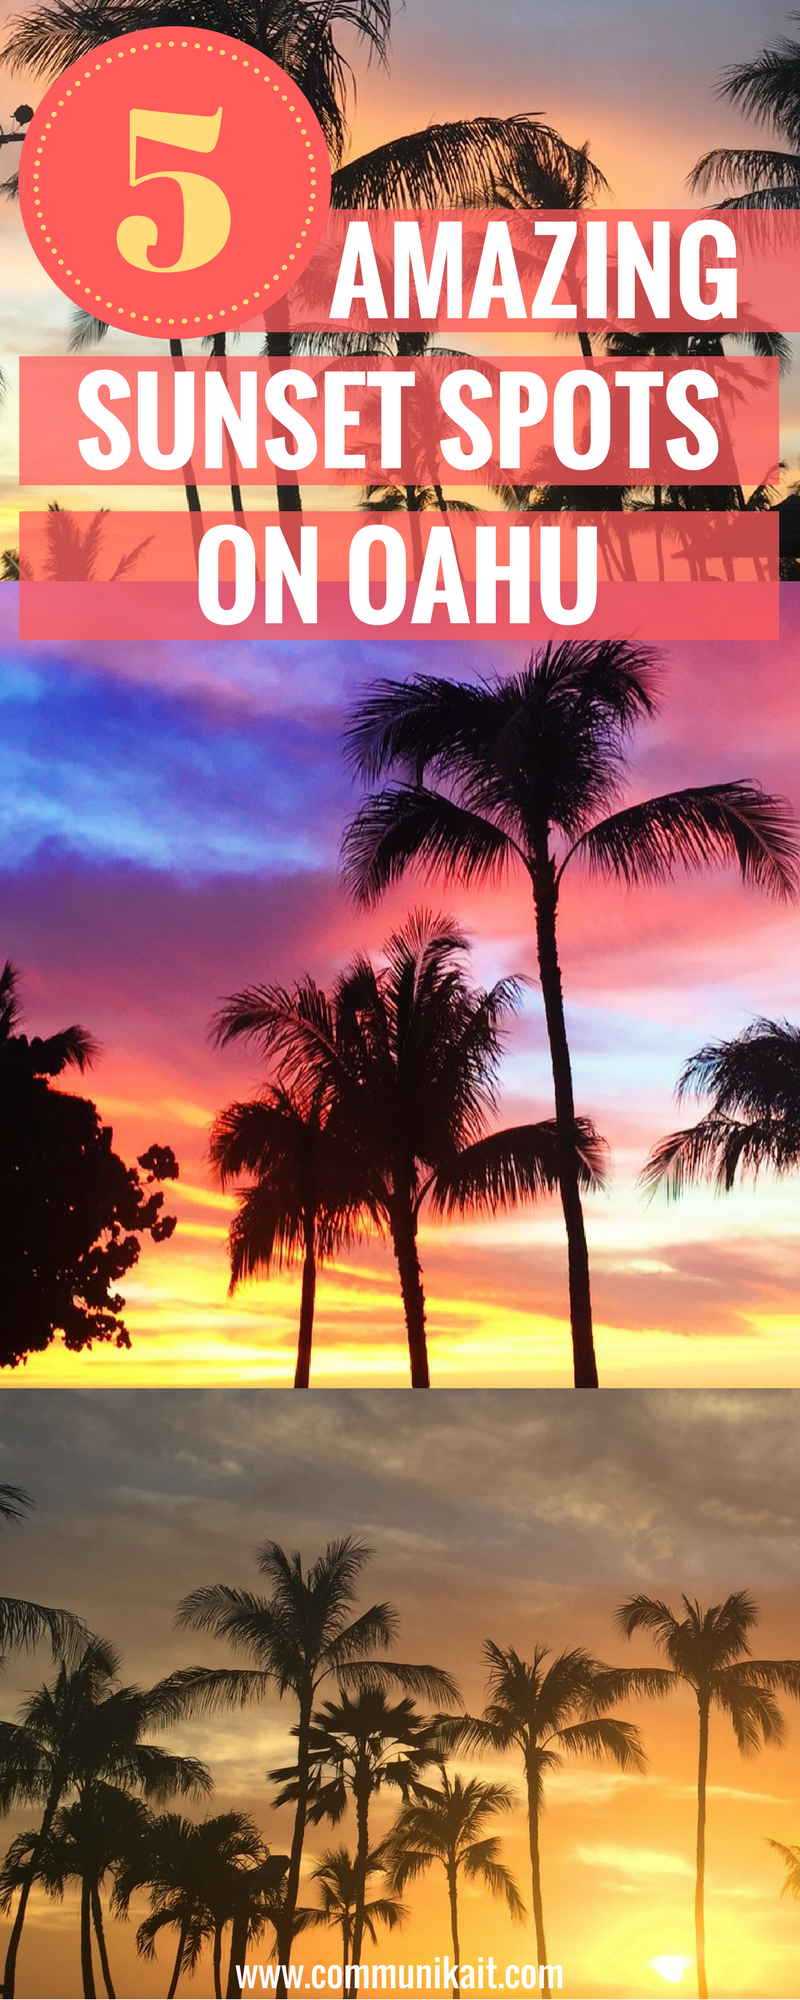 5 AMAZING PLACES TO WATCH THE SUNSET ON OAHU - Oahu Itinerary - Hawaii Itinerary - Hawaii Sunset Spot - Best Places To Visit Oahu - Hawaii Activities Free - Hawaii Vacation - To Do On Oahu - Top Oahu Activities - Communikait by Kait Hanson - Where to watch the sunset in Hawaii